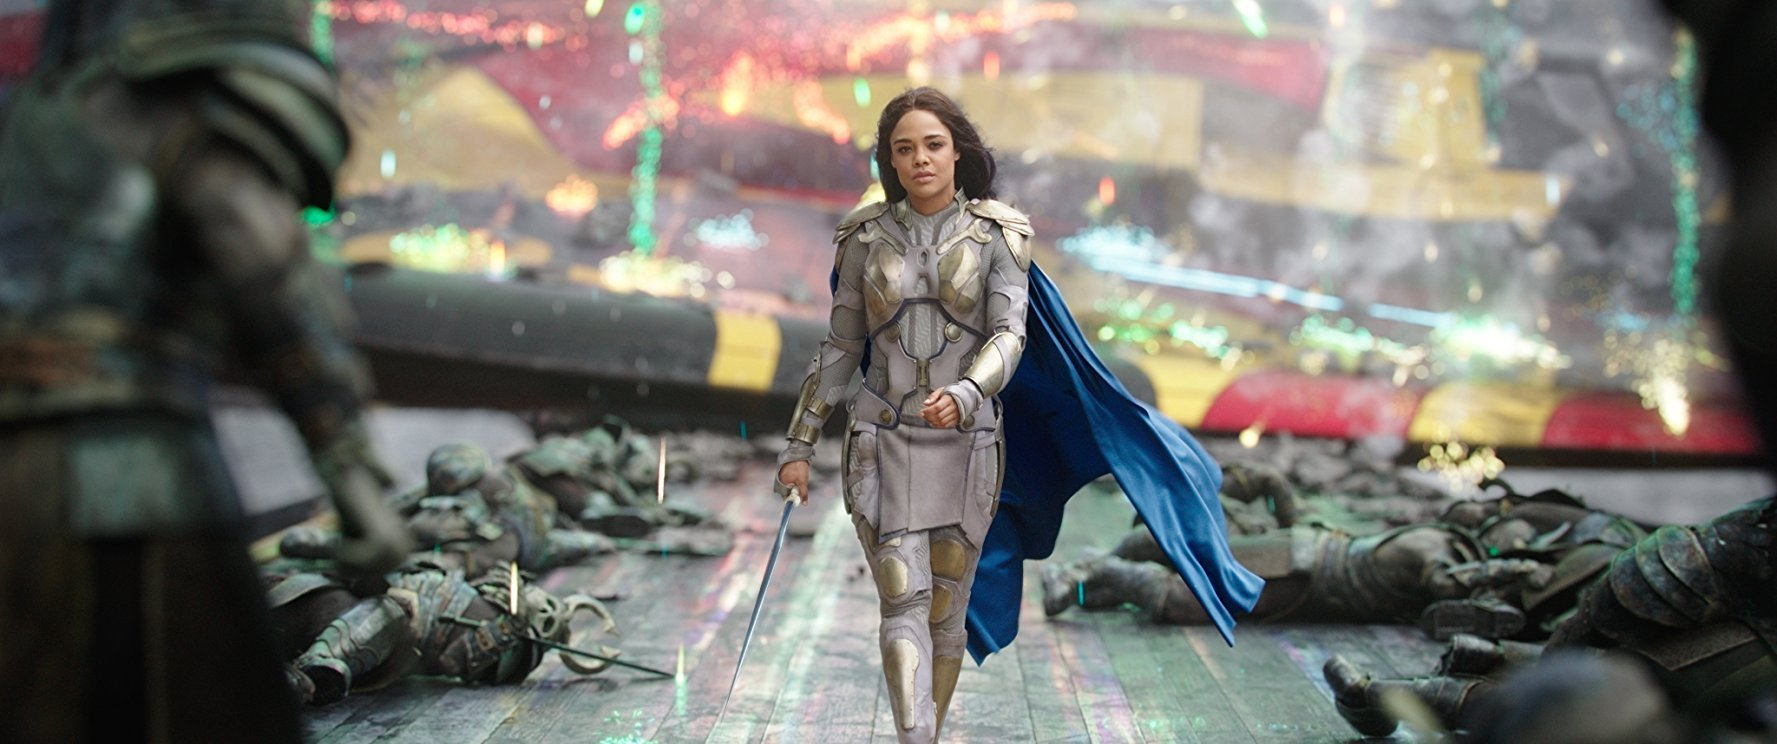 Valkyrie is now the first LGBTQ Marvel movie superhero, but she's been bi forever